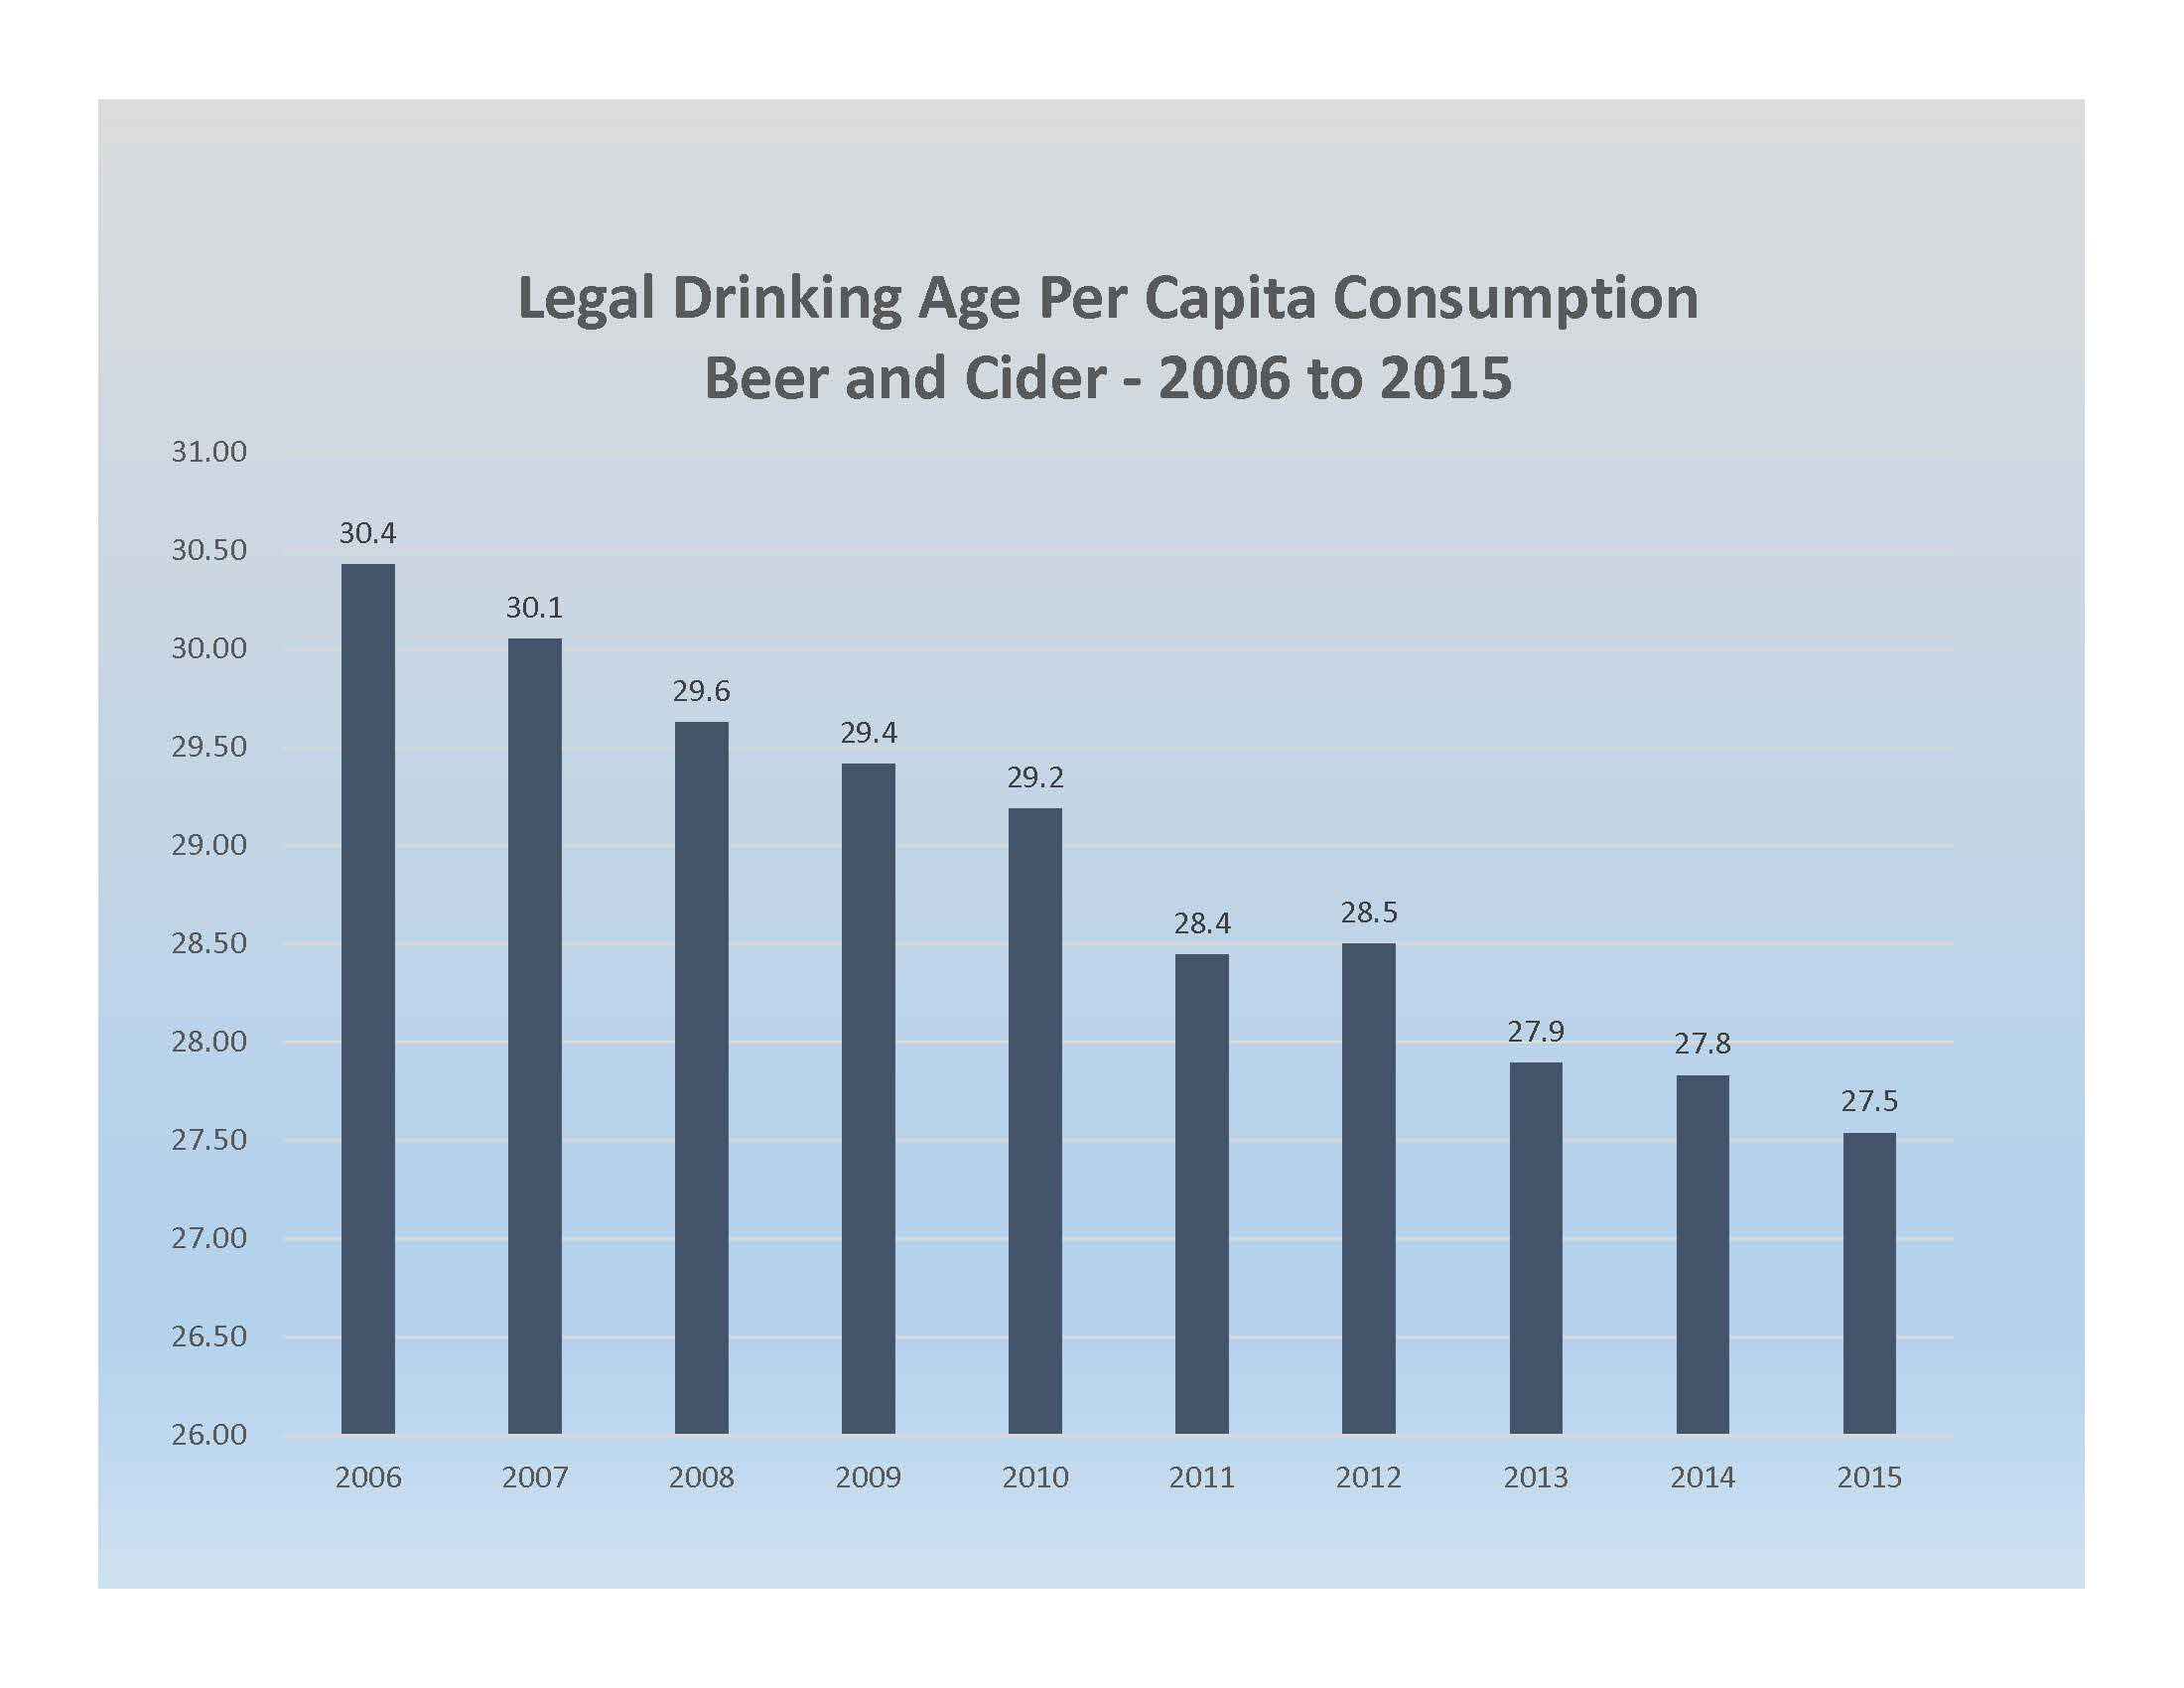 Legal Drinking Age Per Capita Consumption Beer and Cider - 2006 to 2015